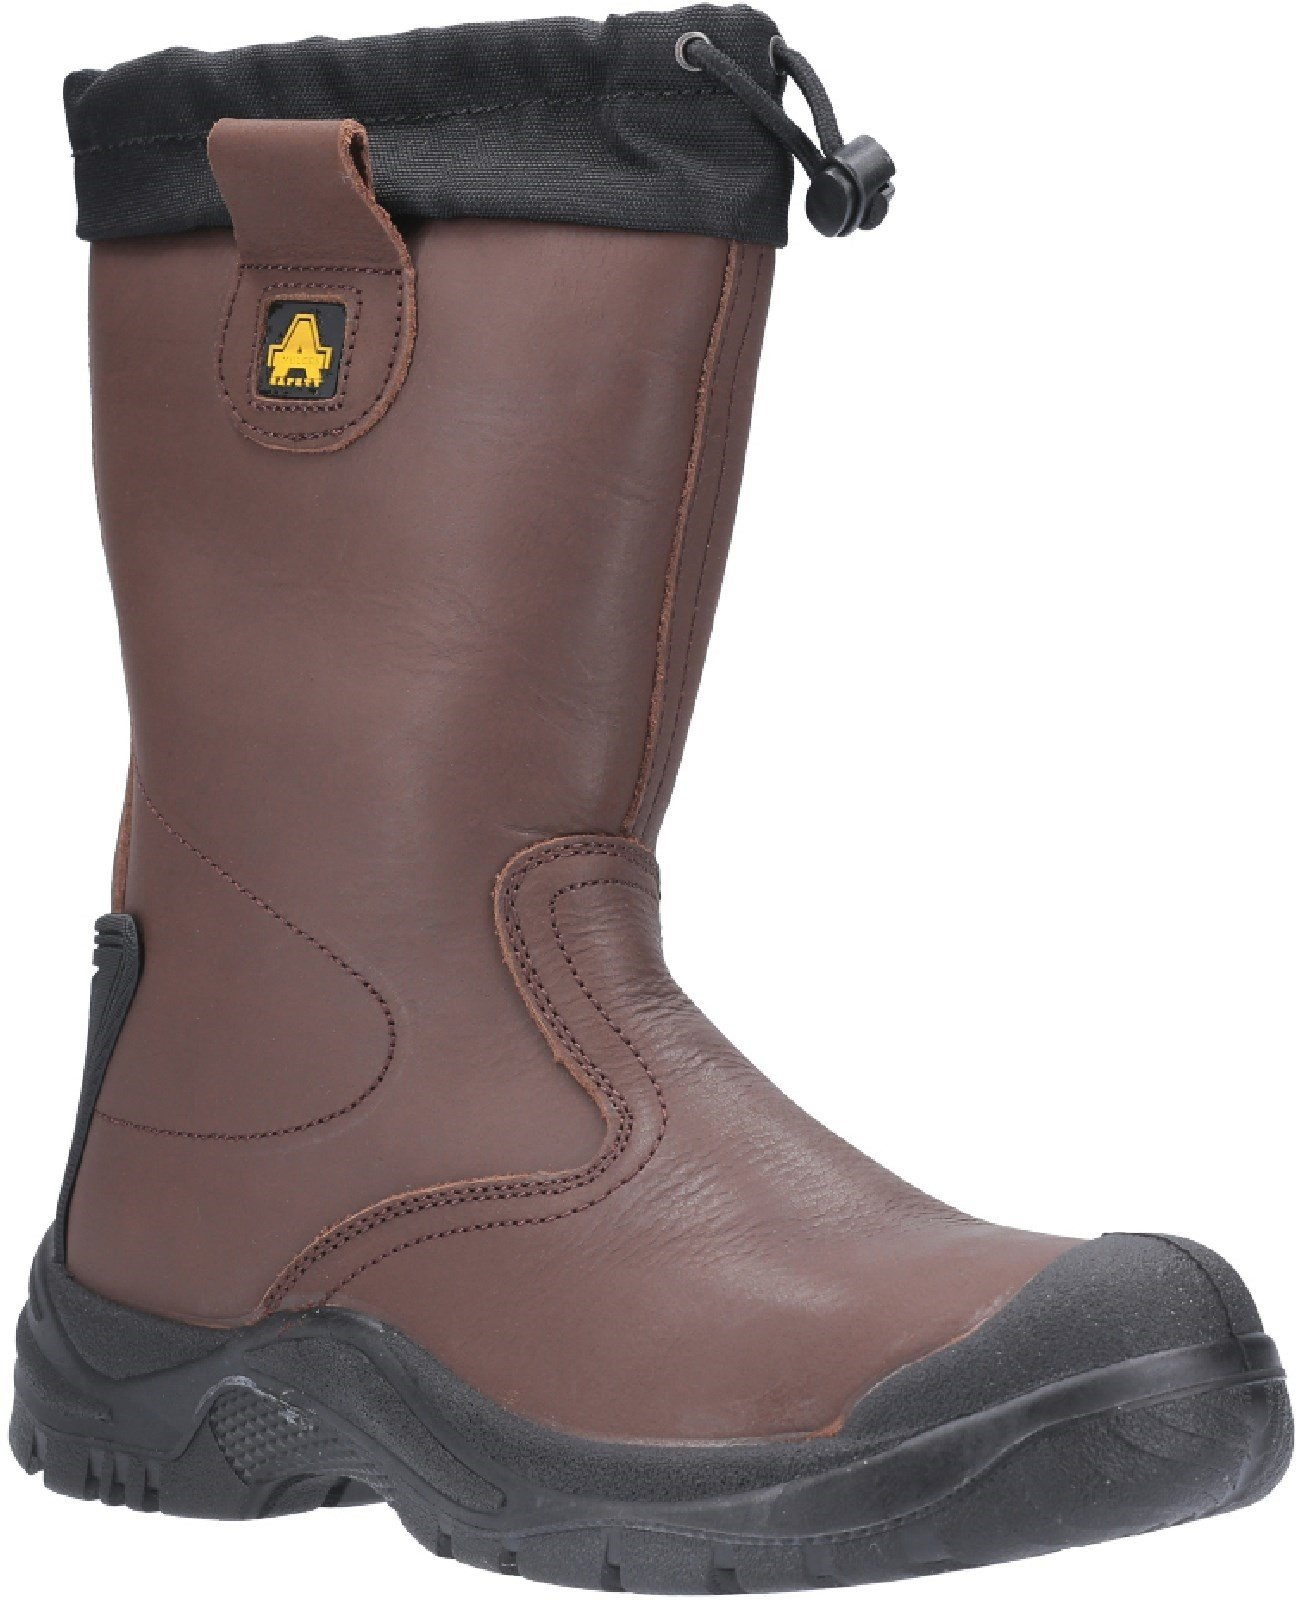 Amblers Unisex Safety Antistatic Pull On Rigger Boot Brown 28126 - Brown 4